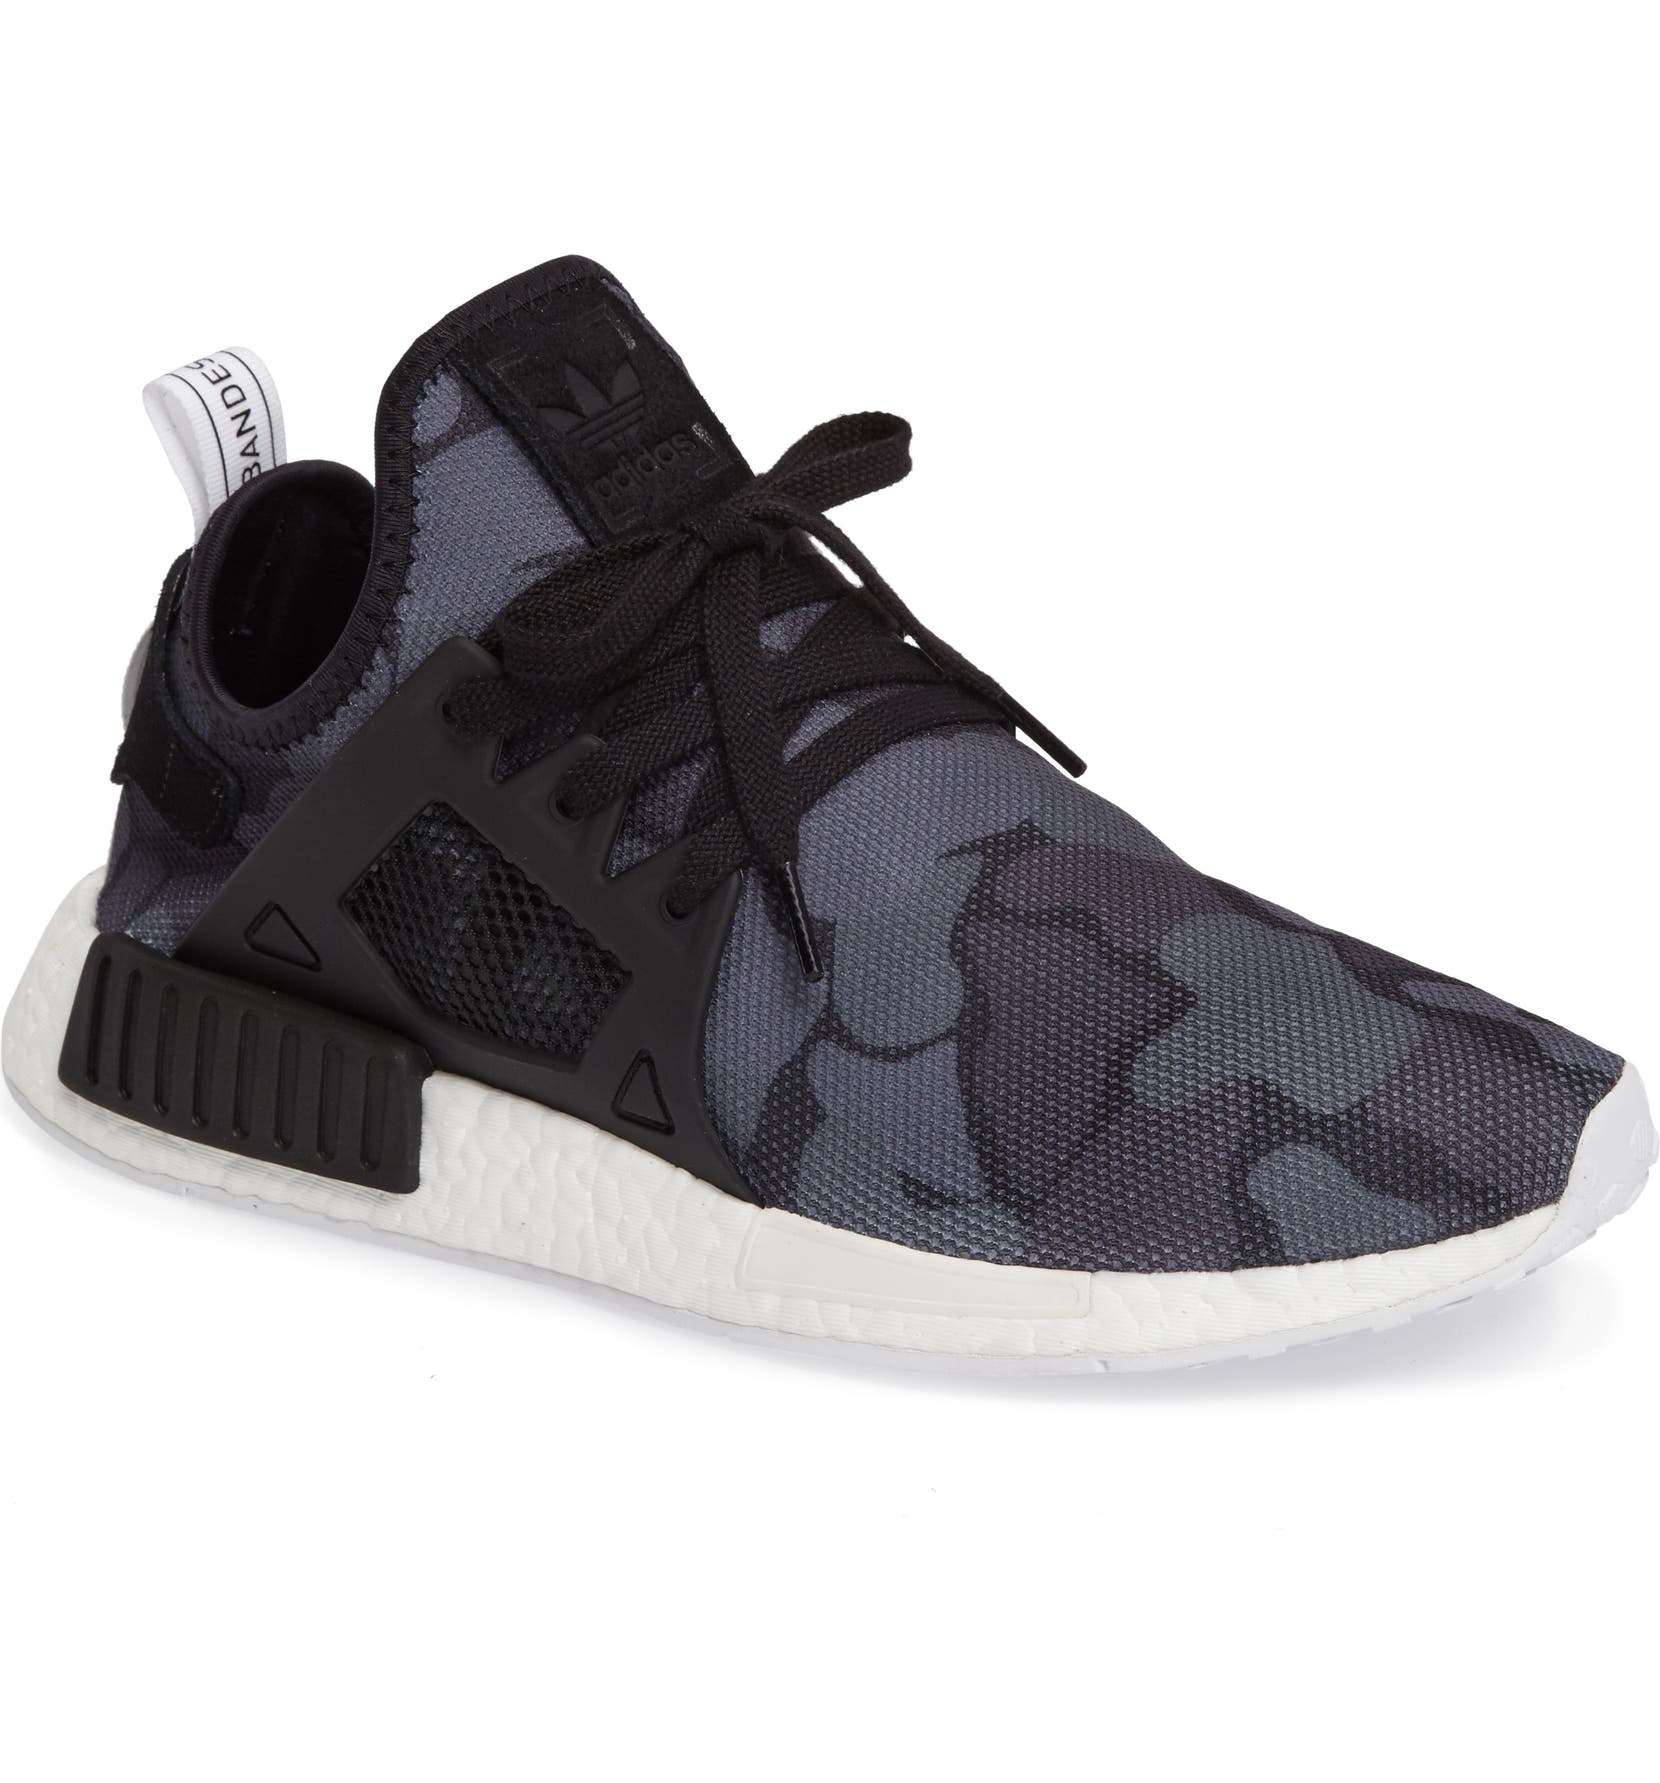 best service e8c38 e07ab NMD XR1 Camo Pack Sneakers